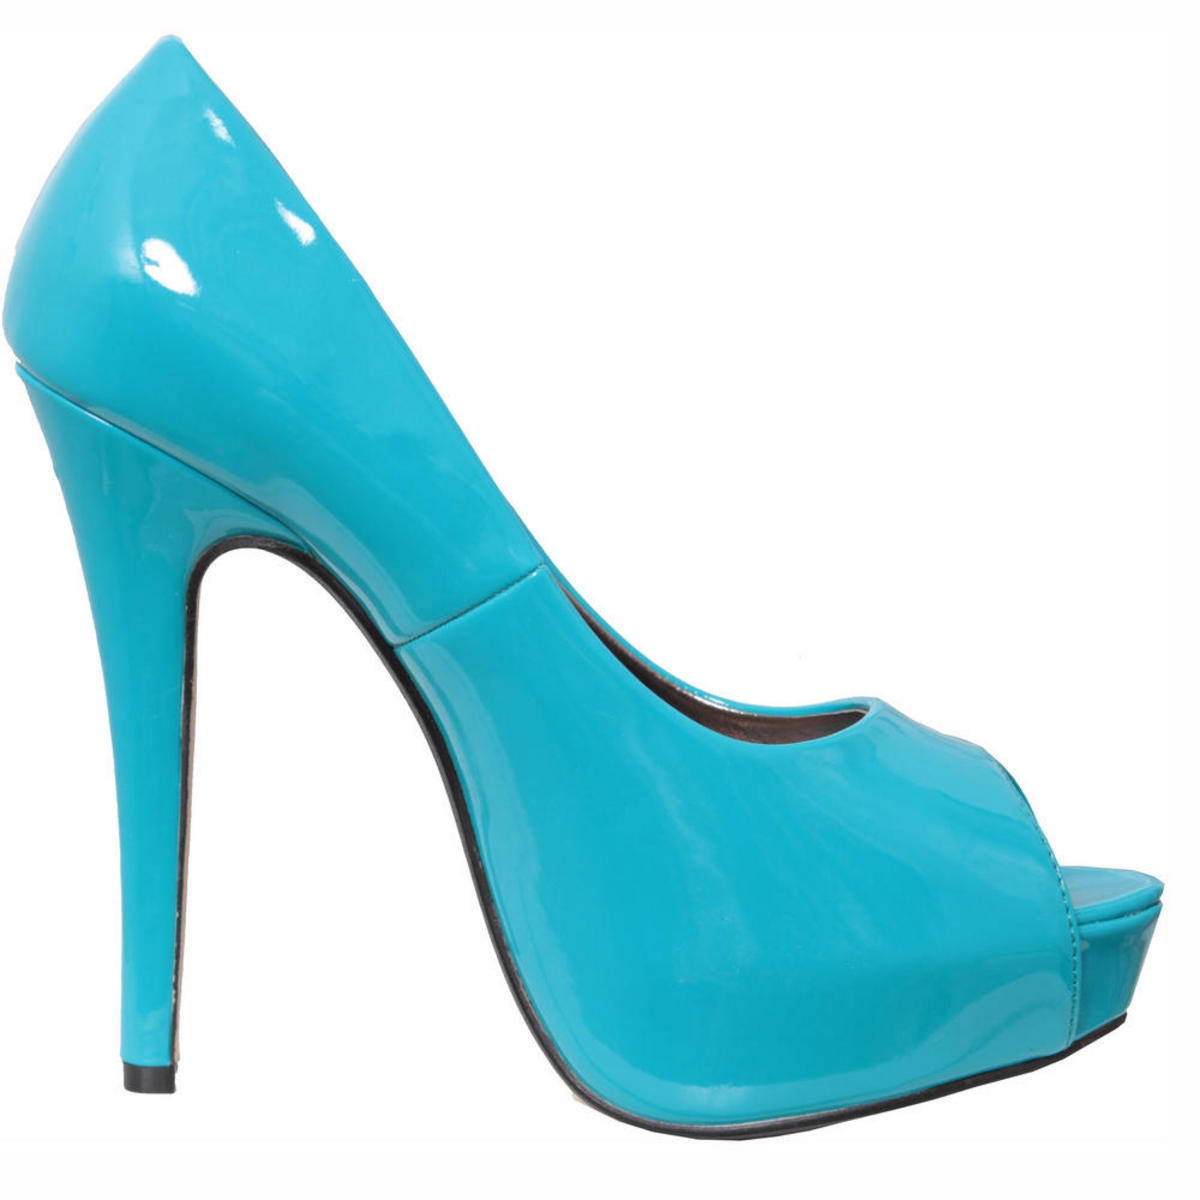 SIZE 3 ONLY Turquoise Patent Peeptoe Platform Shoe Preview